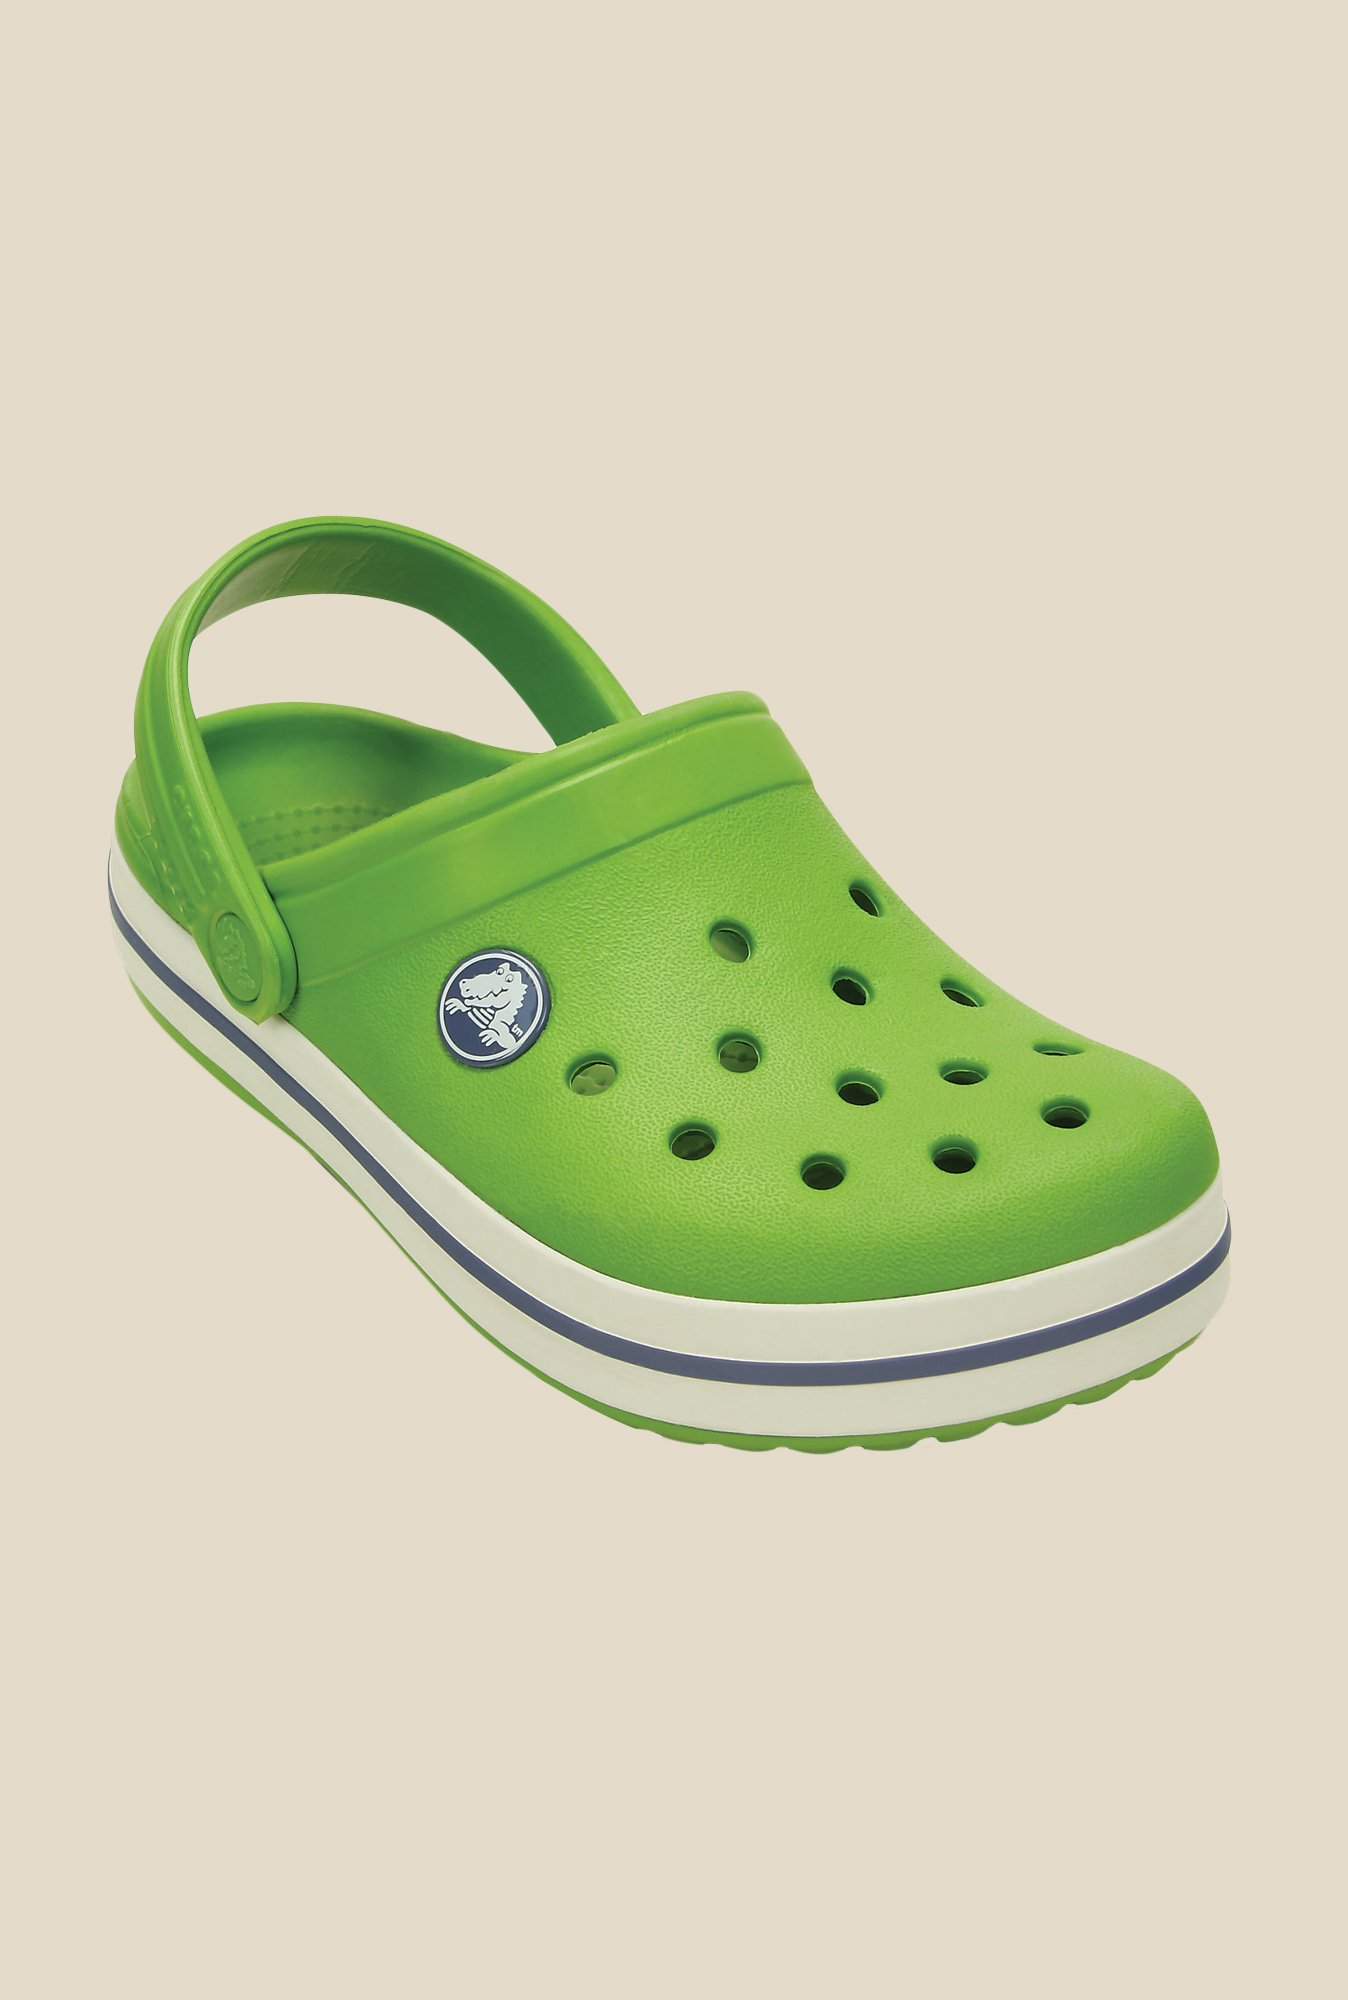 Crocs Crocband Parrot Green & White Clogs